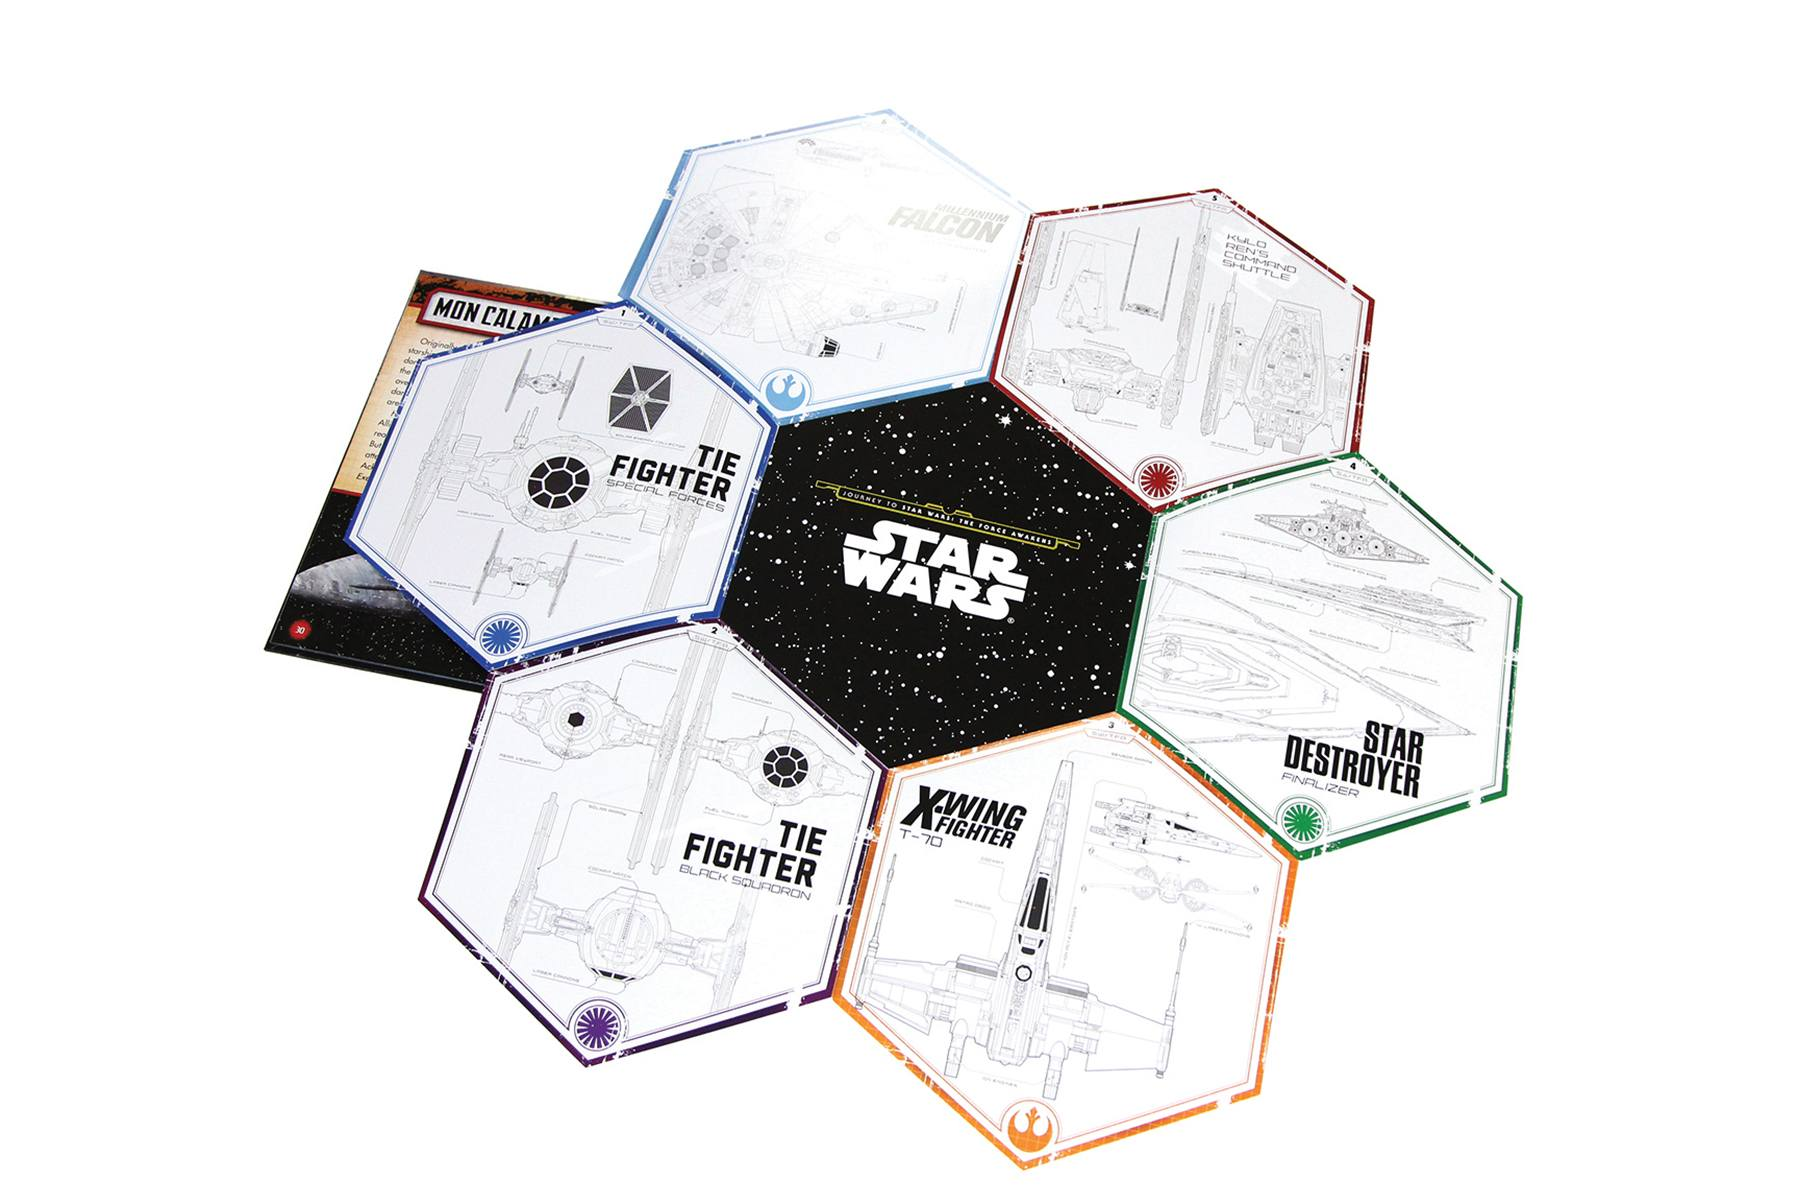 Star Wars - Ships of the Galaxy Trivia Book Buch Trivial Wissen Knowledge Star Wars R2D2 On-Pack Co-Pack Druck Print Verpackung Schachtel Karton Packaging Box Starlite Veredelung Finish UV-Lack Colour 4c